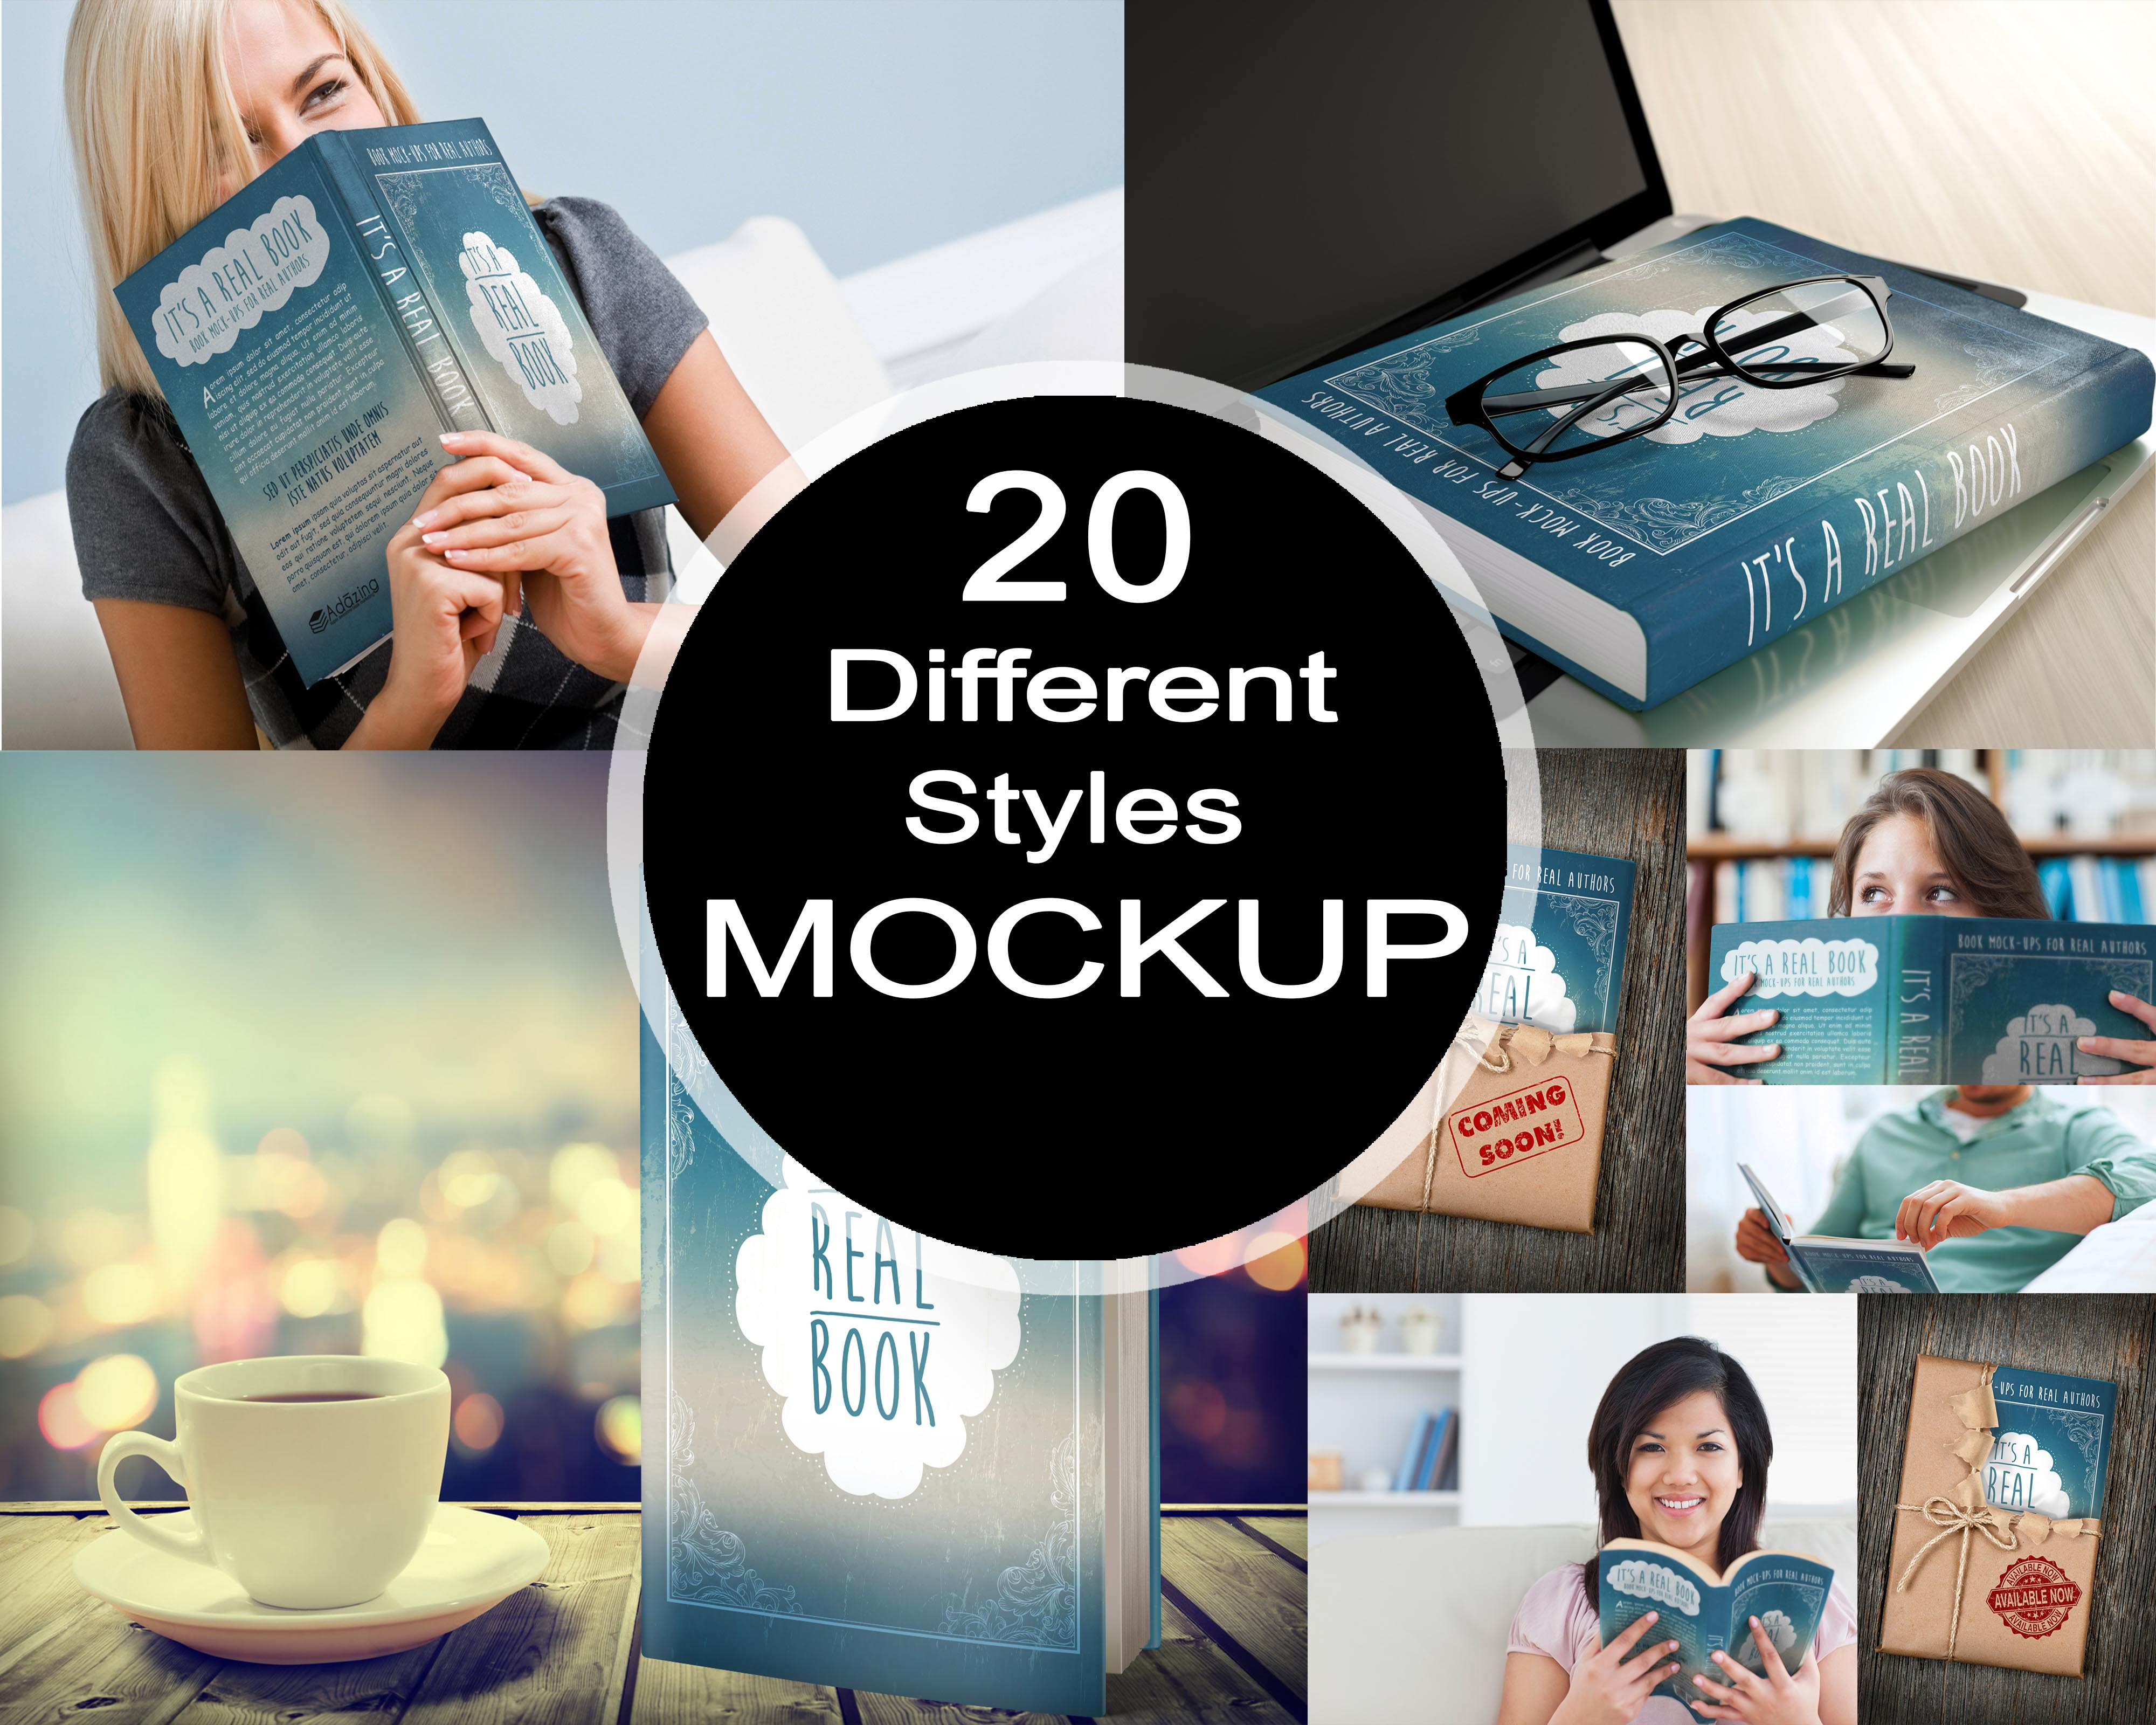 Amazing 3d book cover mockup in 20 different styles